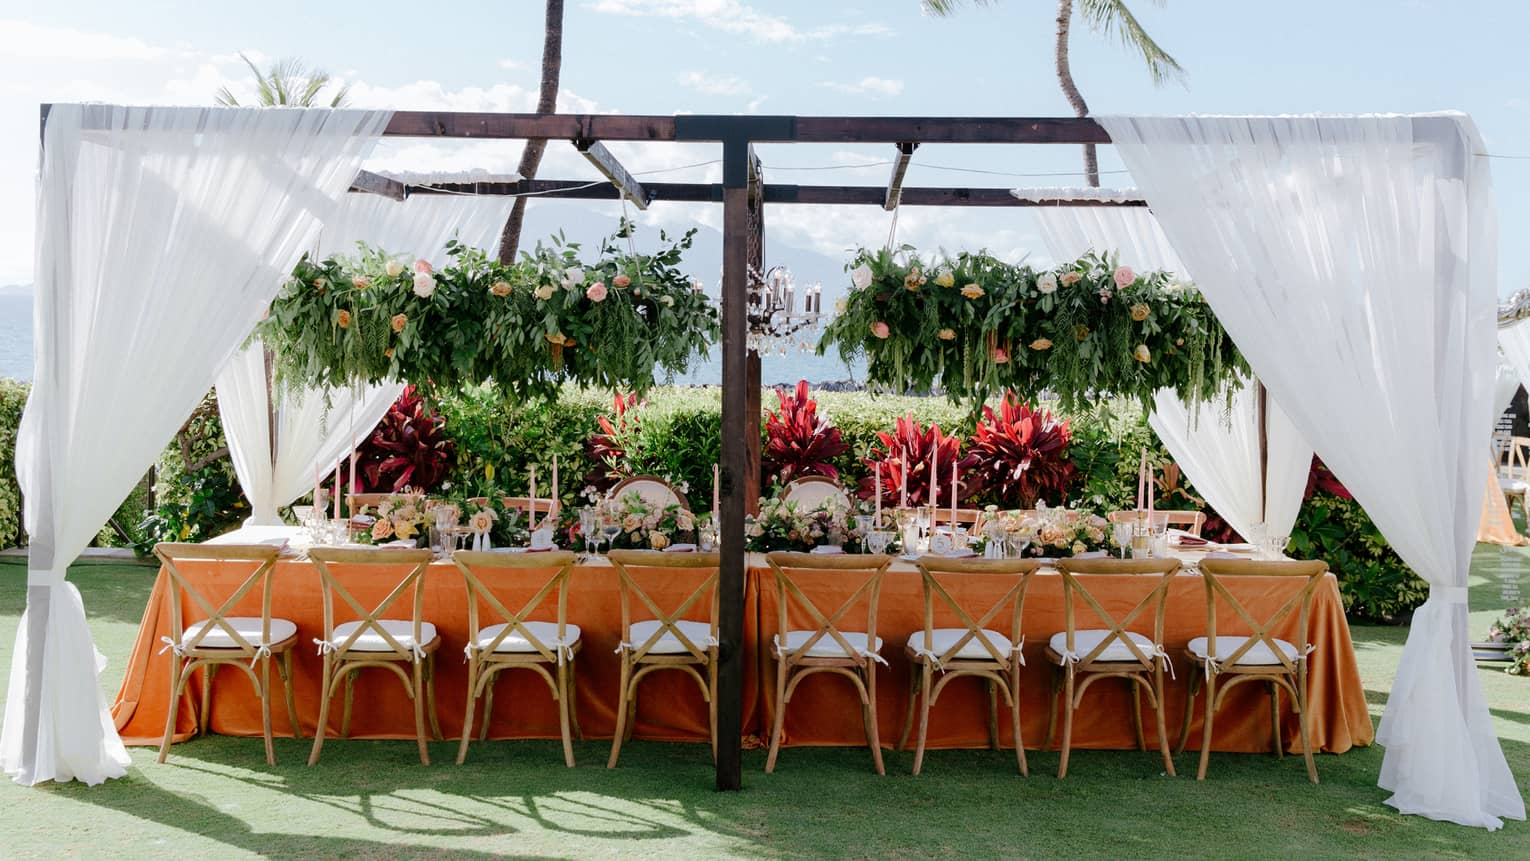 Outdoor wedding reception table under pergola with white curtains